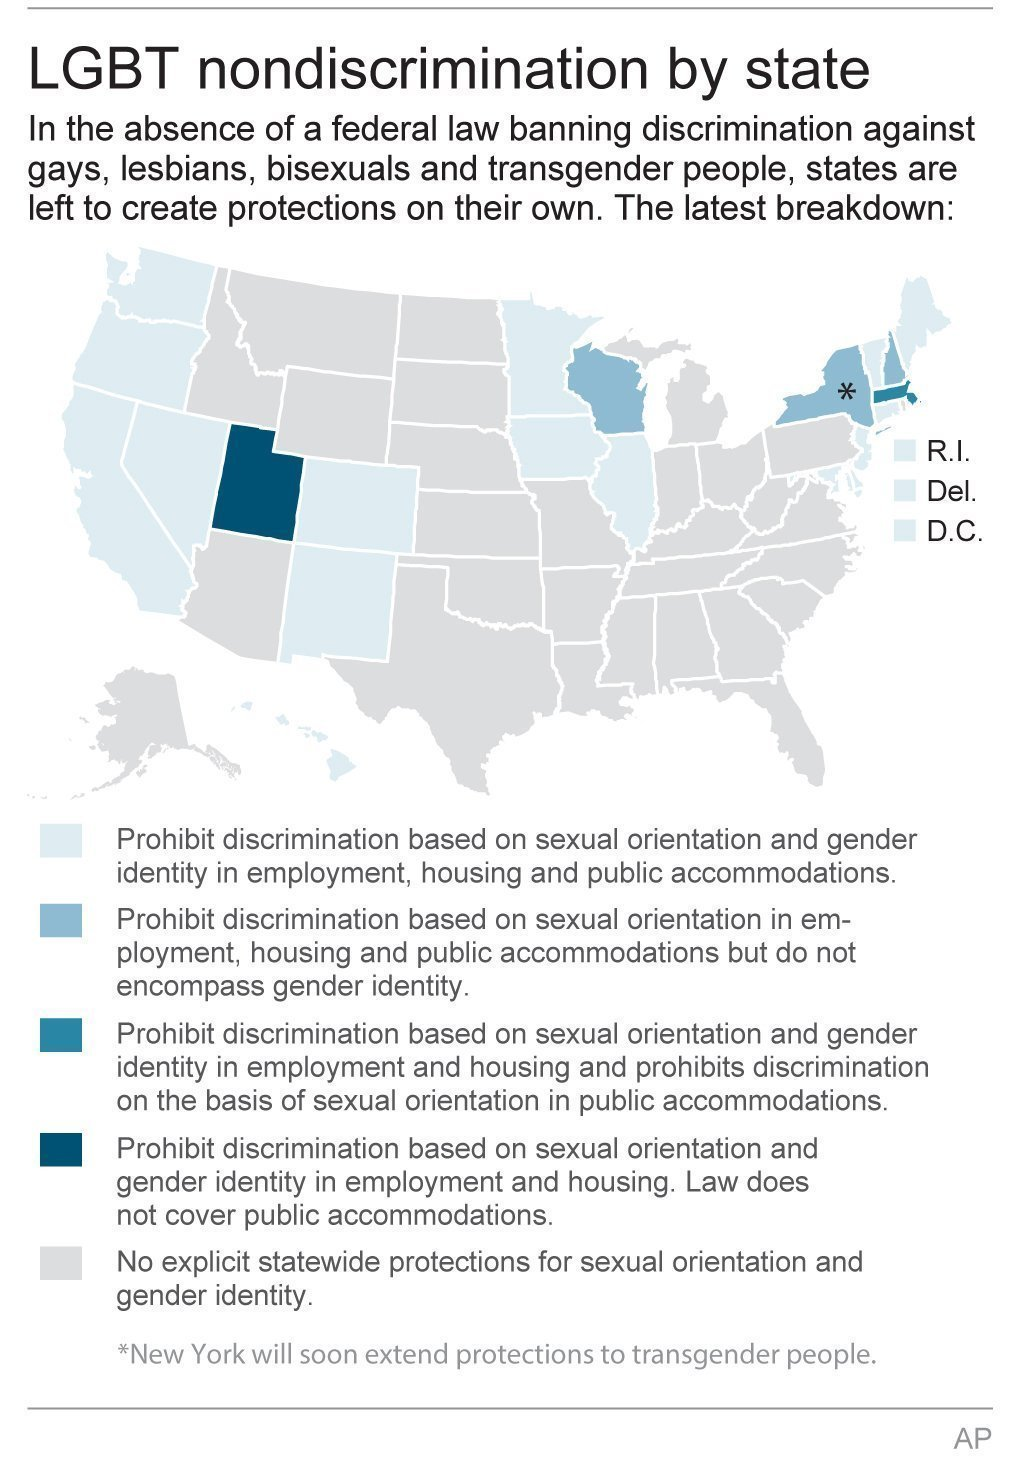 Housing discrimination based on gender and sexual orientation